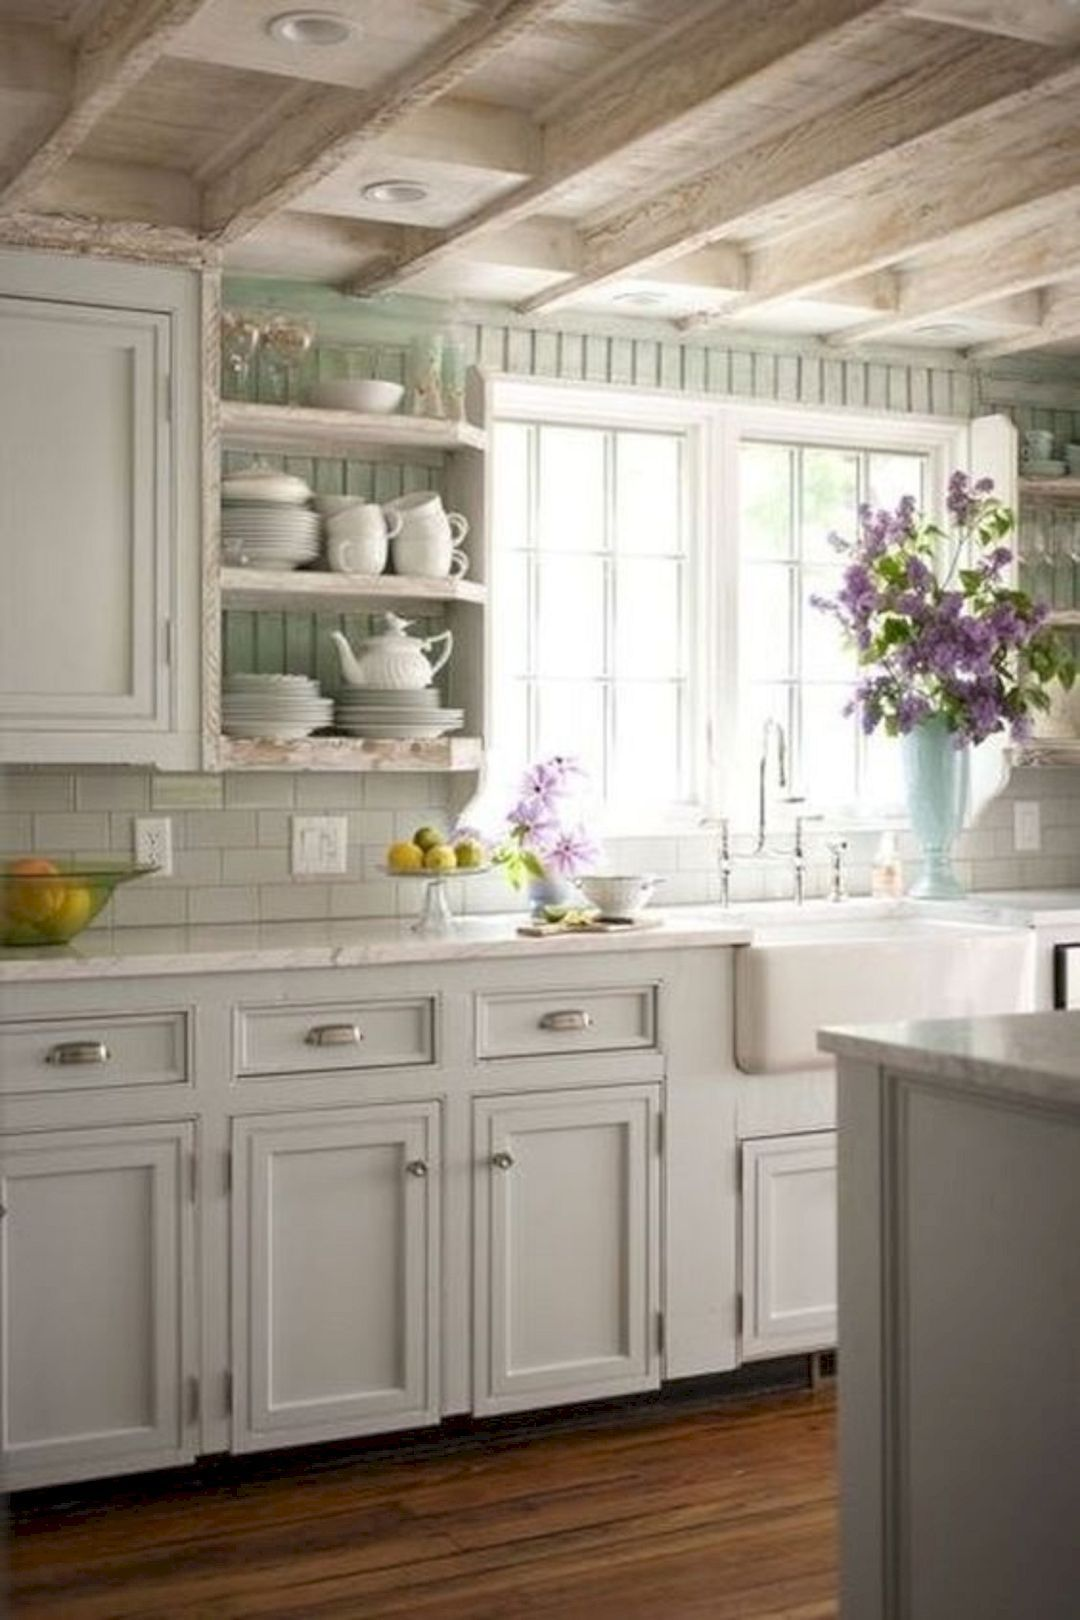 16 Shabby Chic Room Decoration Ideas With Images Shabby Chic Kitchen Decor Rustic Kitchen Cabinets French Cottage Kitchen